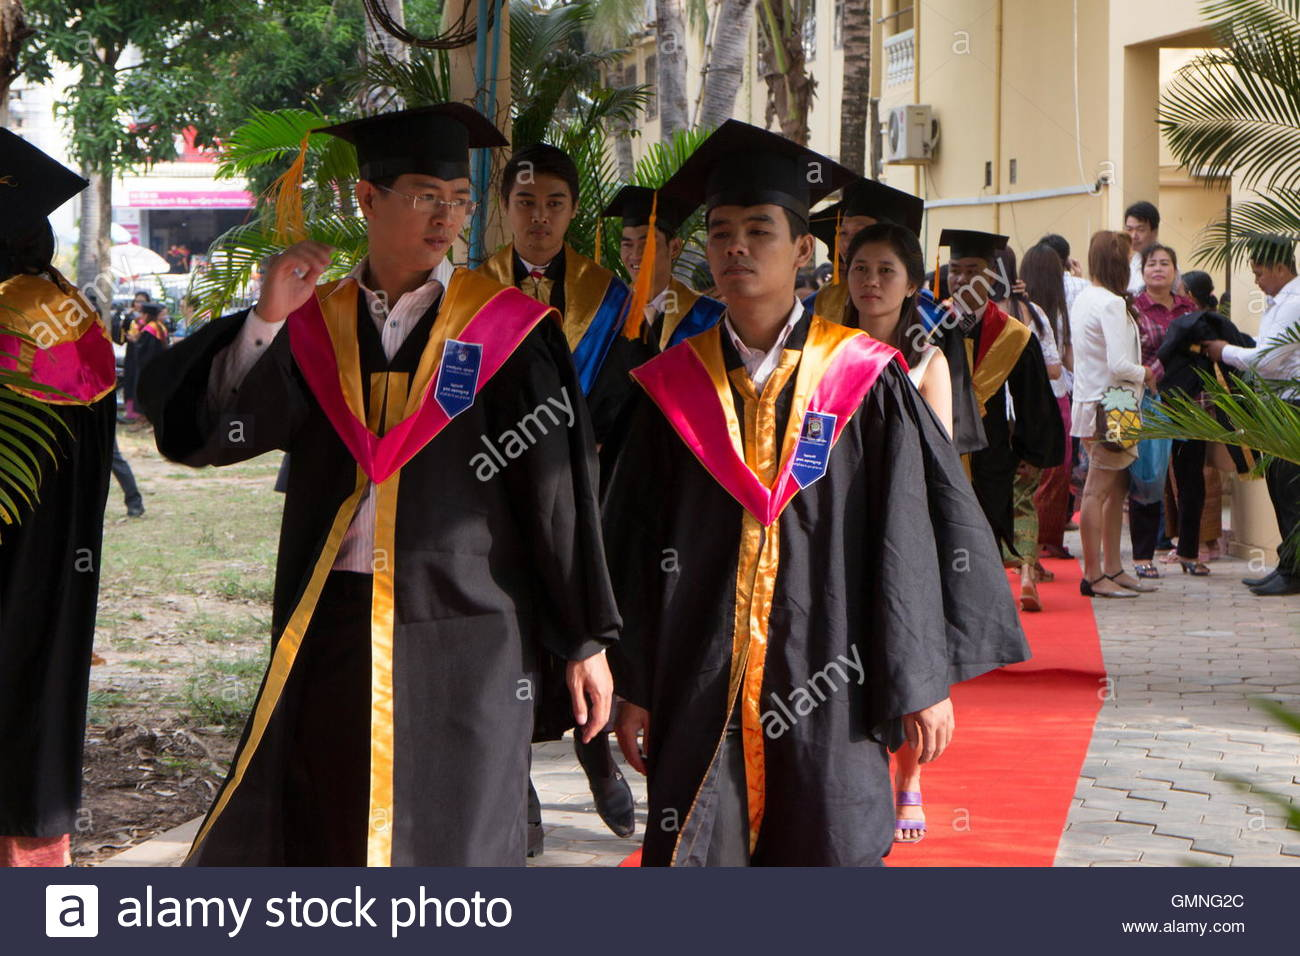 Medium view students in Asia arrive at their university graduation ceremony wearing caps and gowns. - Stock Image